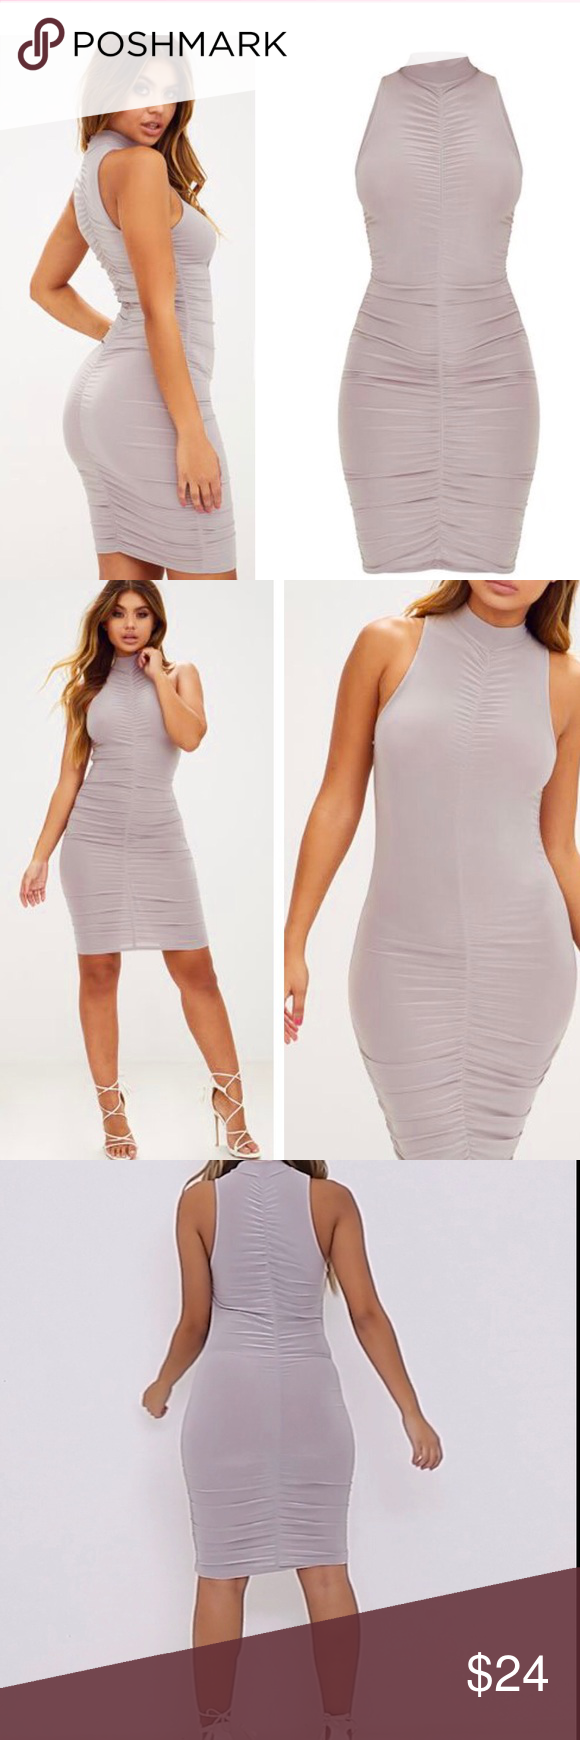 Town bodycon dress to hide stomach in babies day sale shop for